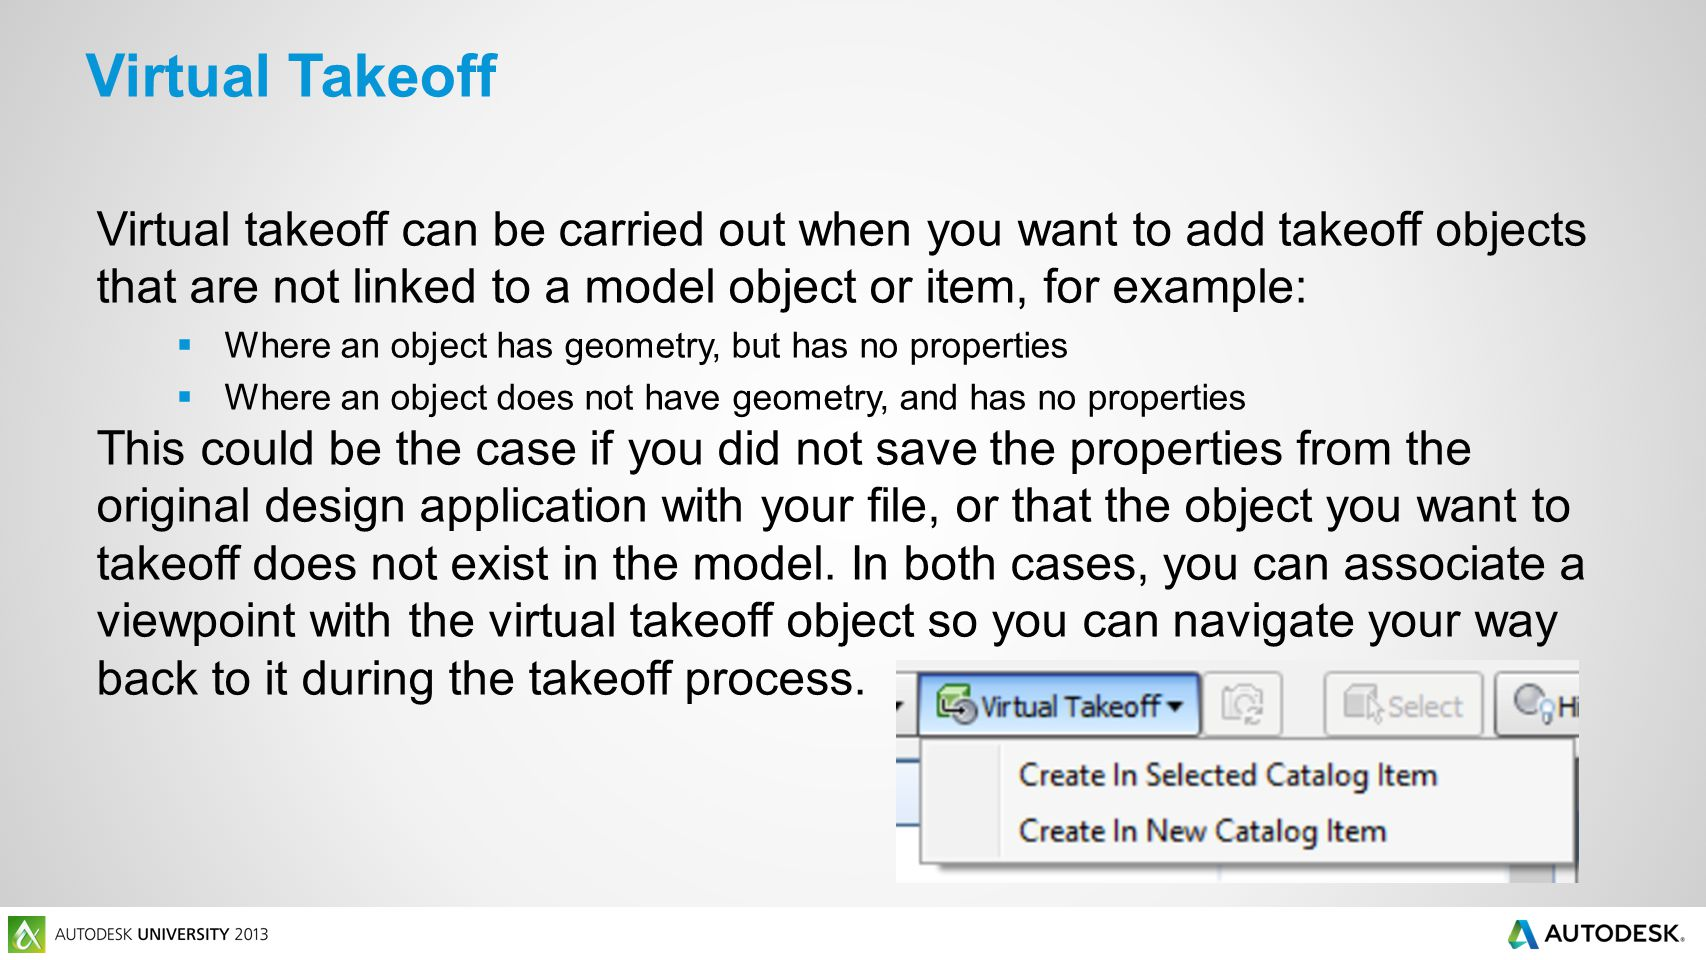 Virtual takeoff can be carried out when you want to add takeoff objects that are not linked to a model object or item, for example:  Where an object has geometry, but has no properties  Where an object does not have geometry, and has no properties This could be the case if you did not save the properties from the original design application with your file, or that the object you want to takeoff does not exist in the model.